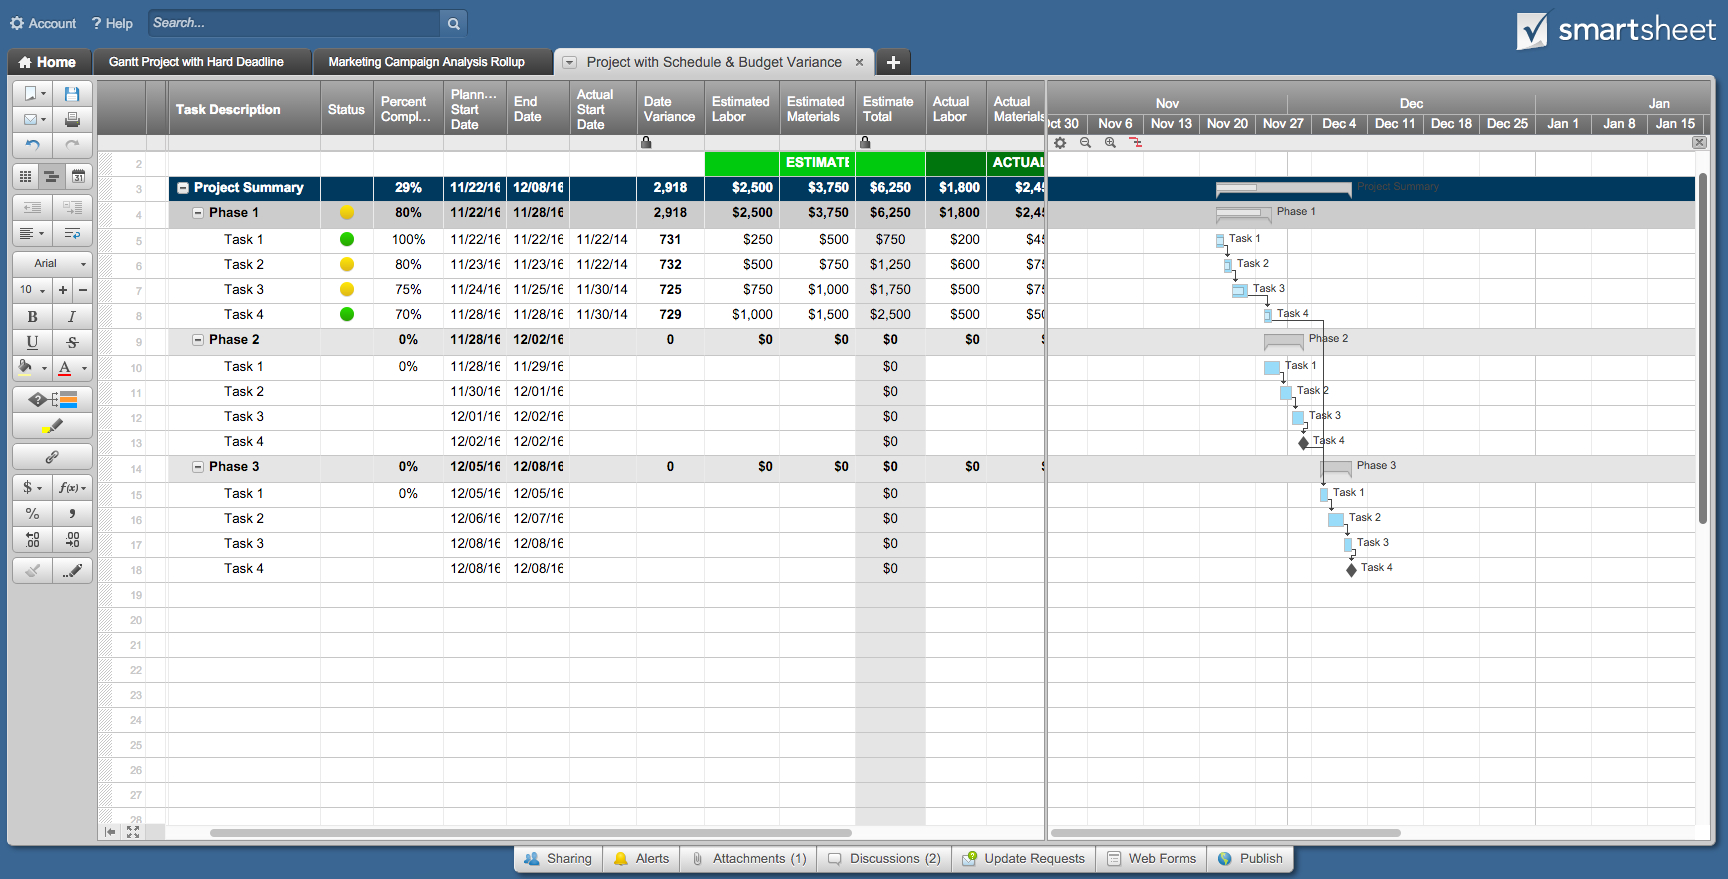 Contract Management Excel Spreadsheet Free Templates Within Contract Management Excel Spreadsheet